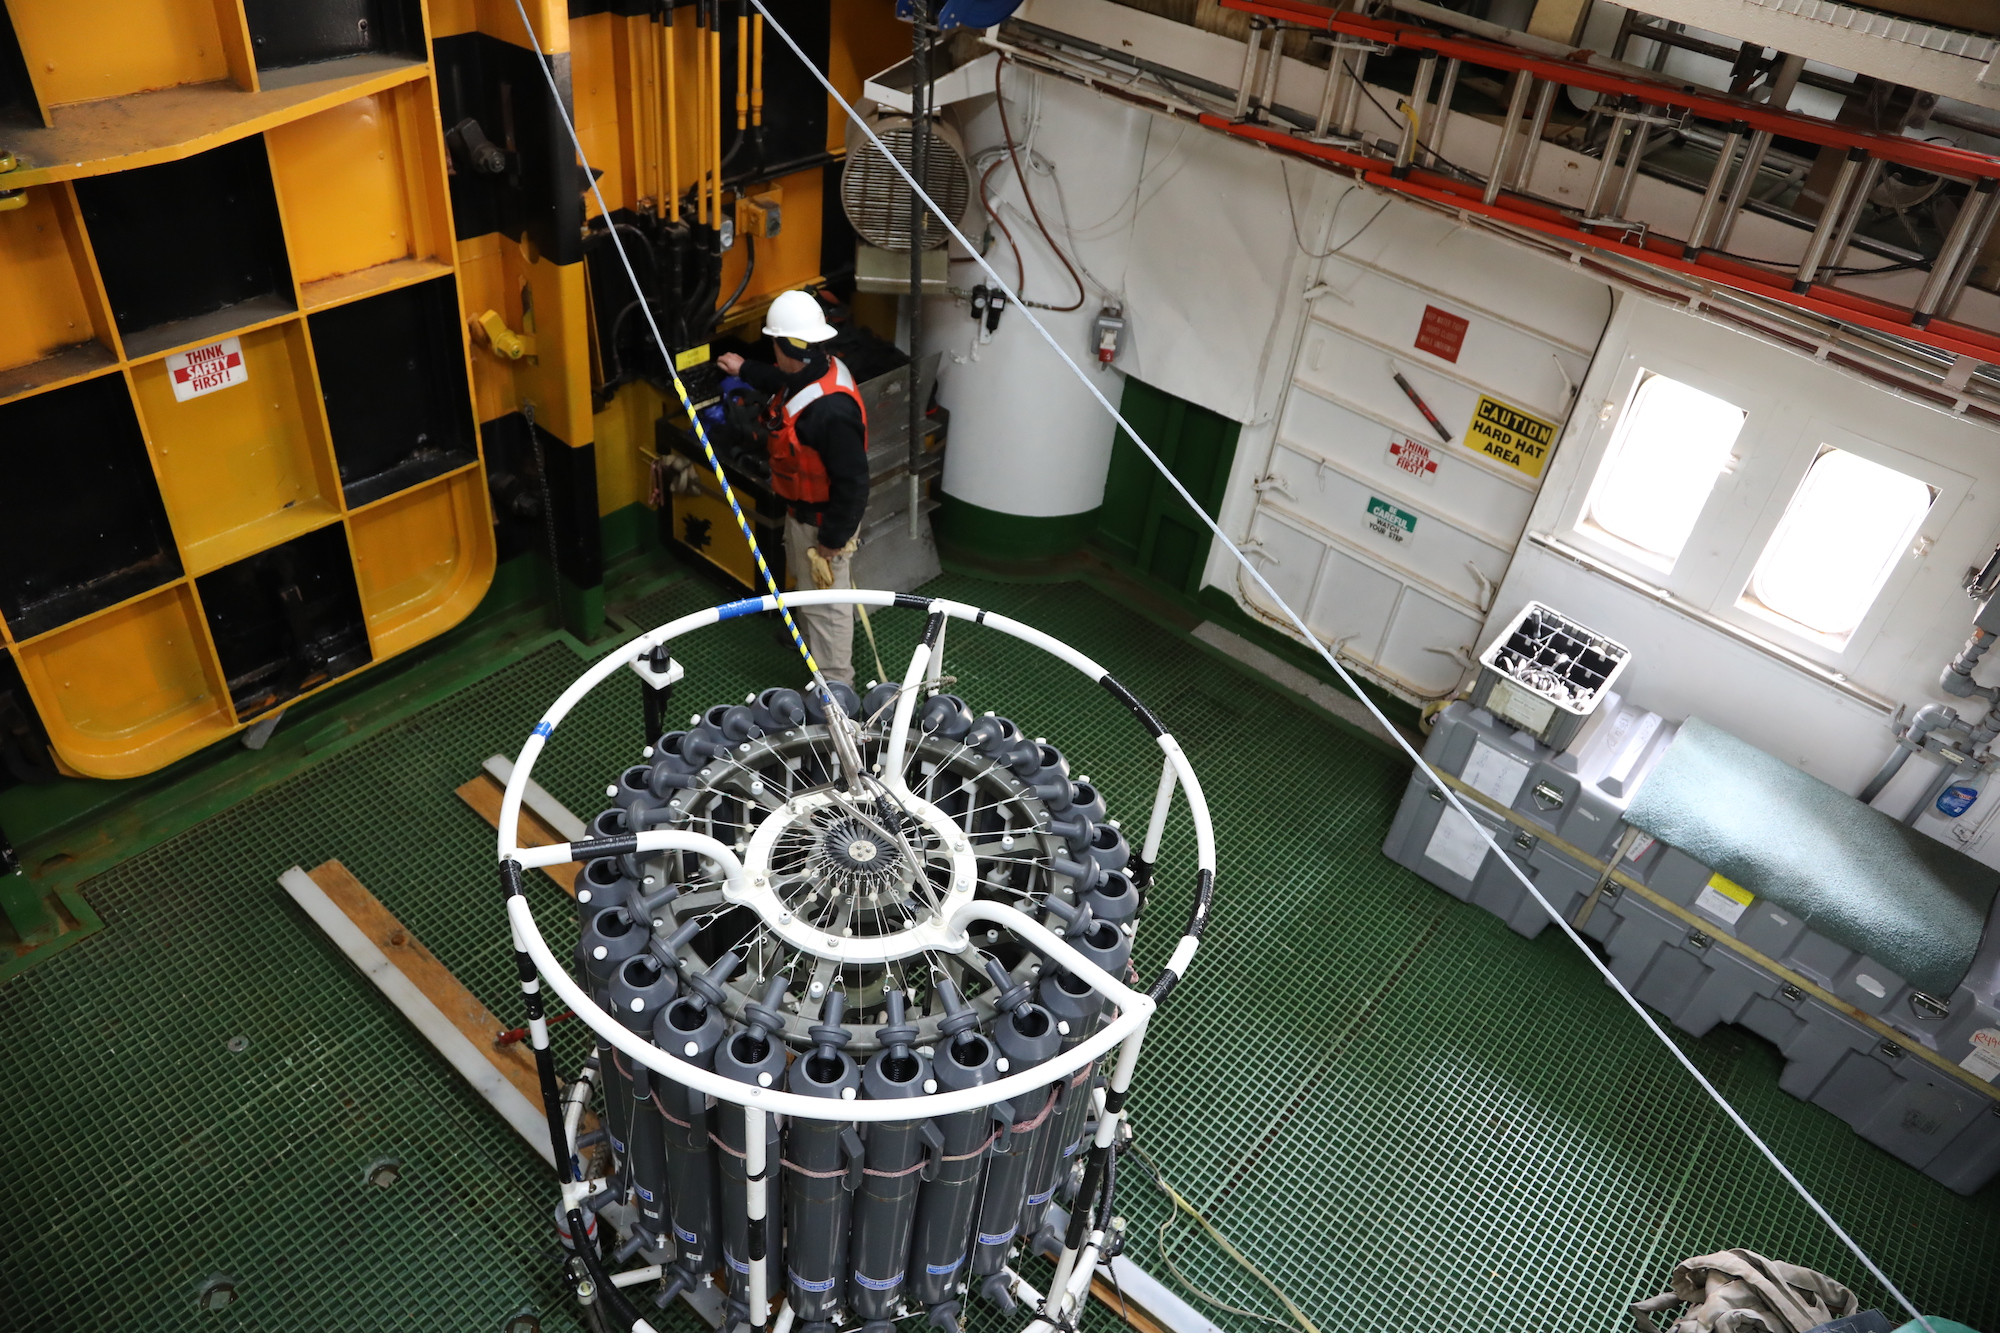 The larger CTD device, also not terribly glamorous, can gather a lot of data in real time, if only in one spot. Its sensors send the information to a computer on the ship all during its trip to the deep. The large gray cannisters are like giant test tubes that can be signaled to open during its passage, sampling the ocean water. Samples can then be used to measure things like chlorophyll (the amounts of which can serve to tell scientists how well the phytoplankton are doing) oxygen in the water. They can also be preserved for future science that will be conducted at land-based laboratories following the cruise. The profiles provided by CTD's have wide application for ocean modeling.  for THOR, the temperature and salinity profiles are used as part of calculating the sound velocity that provides the multibeam sea floor bathymetry data.